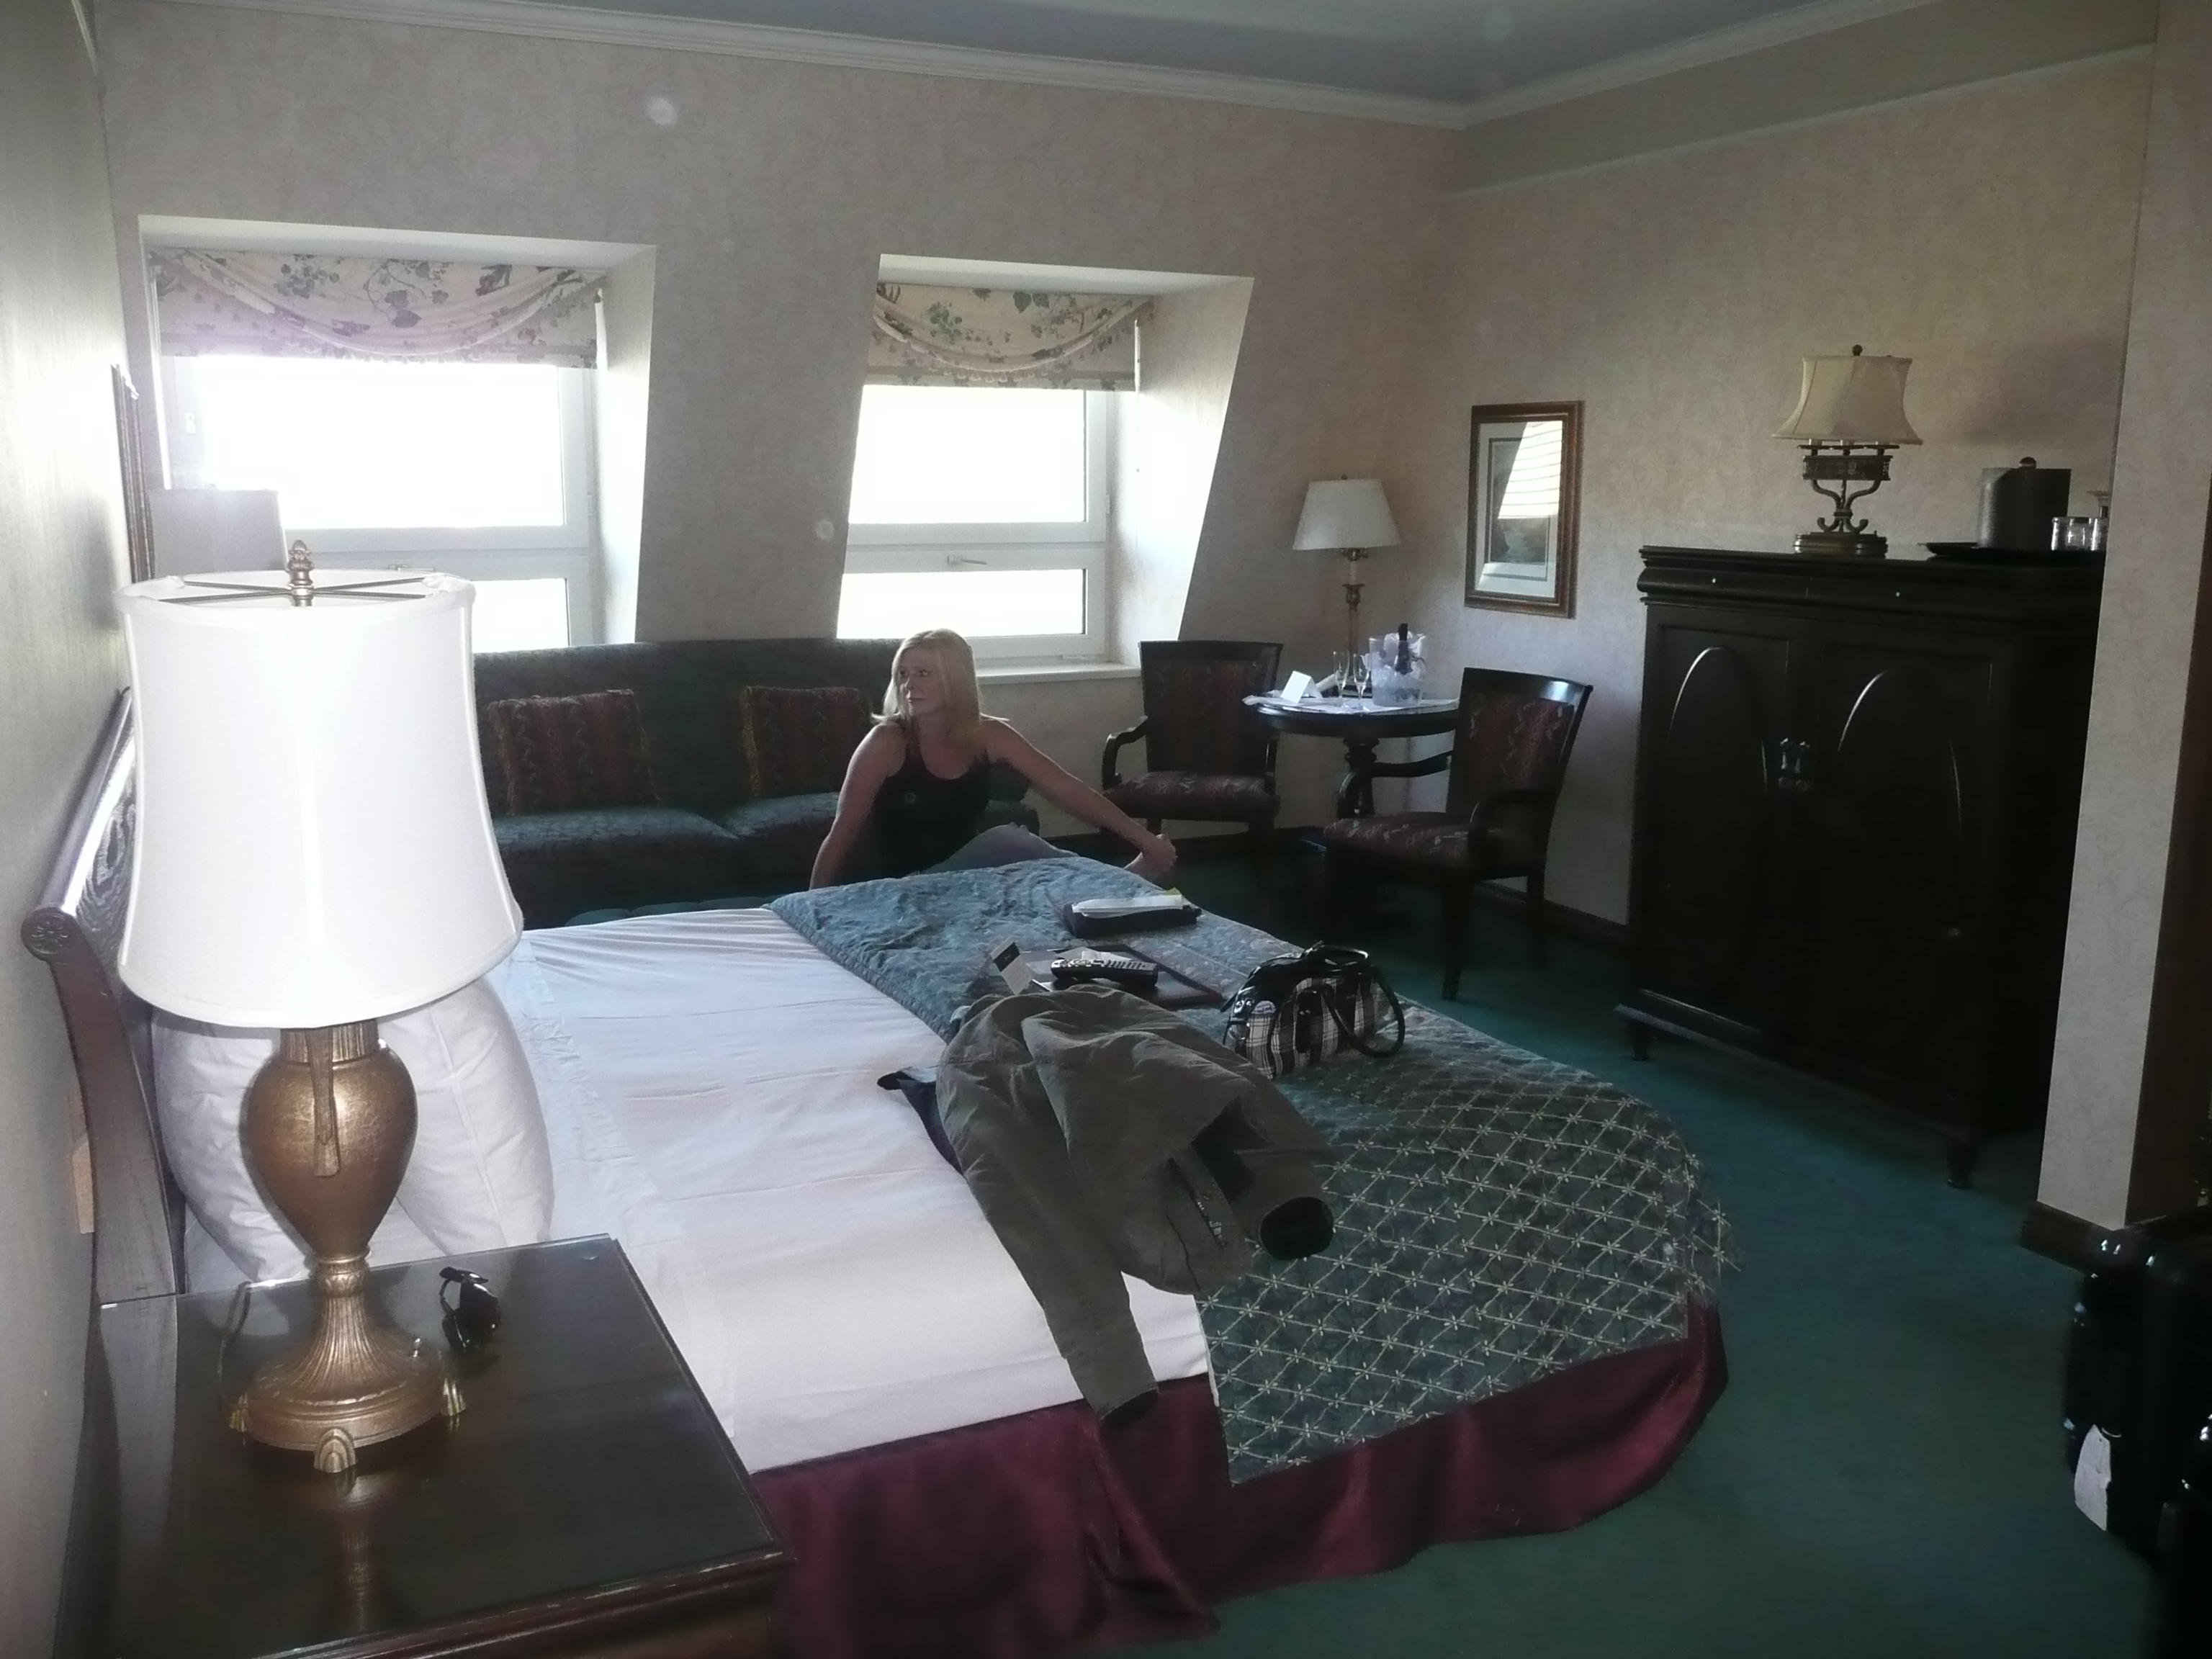 Banff Springs Hotel Room